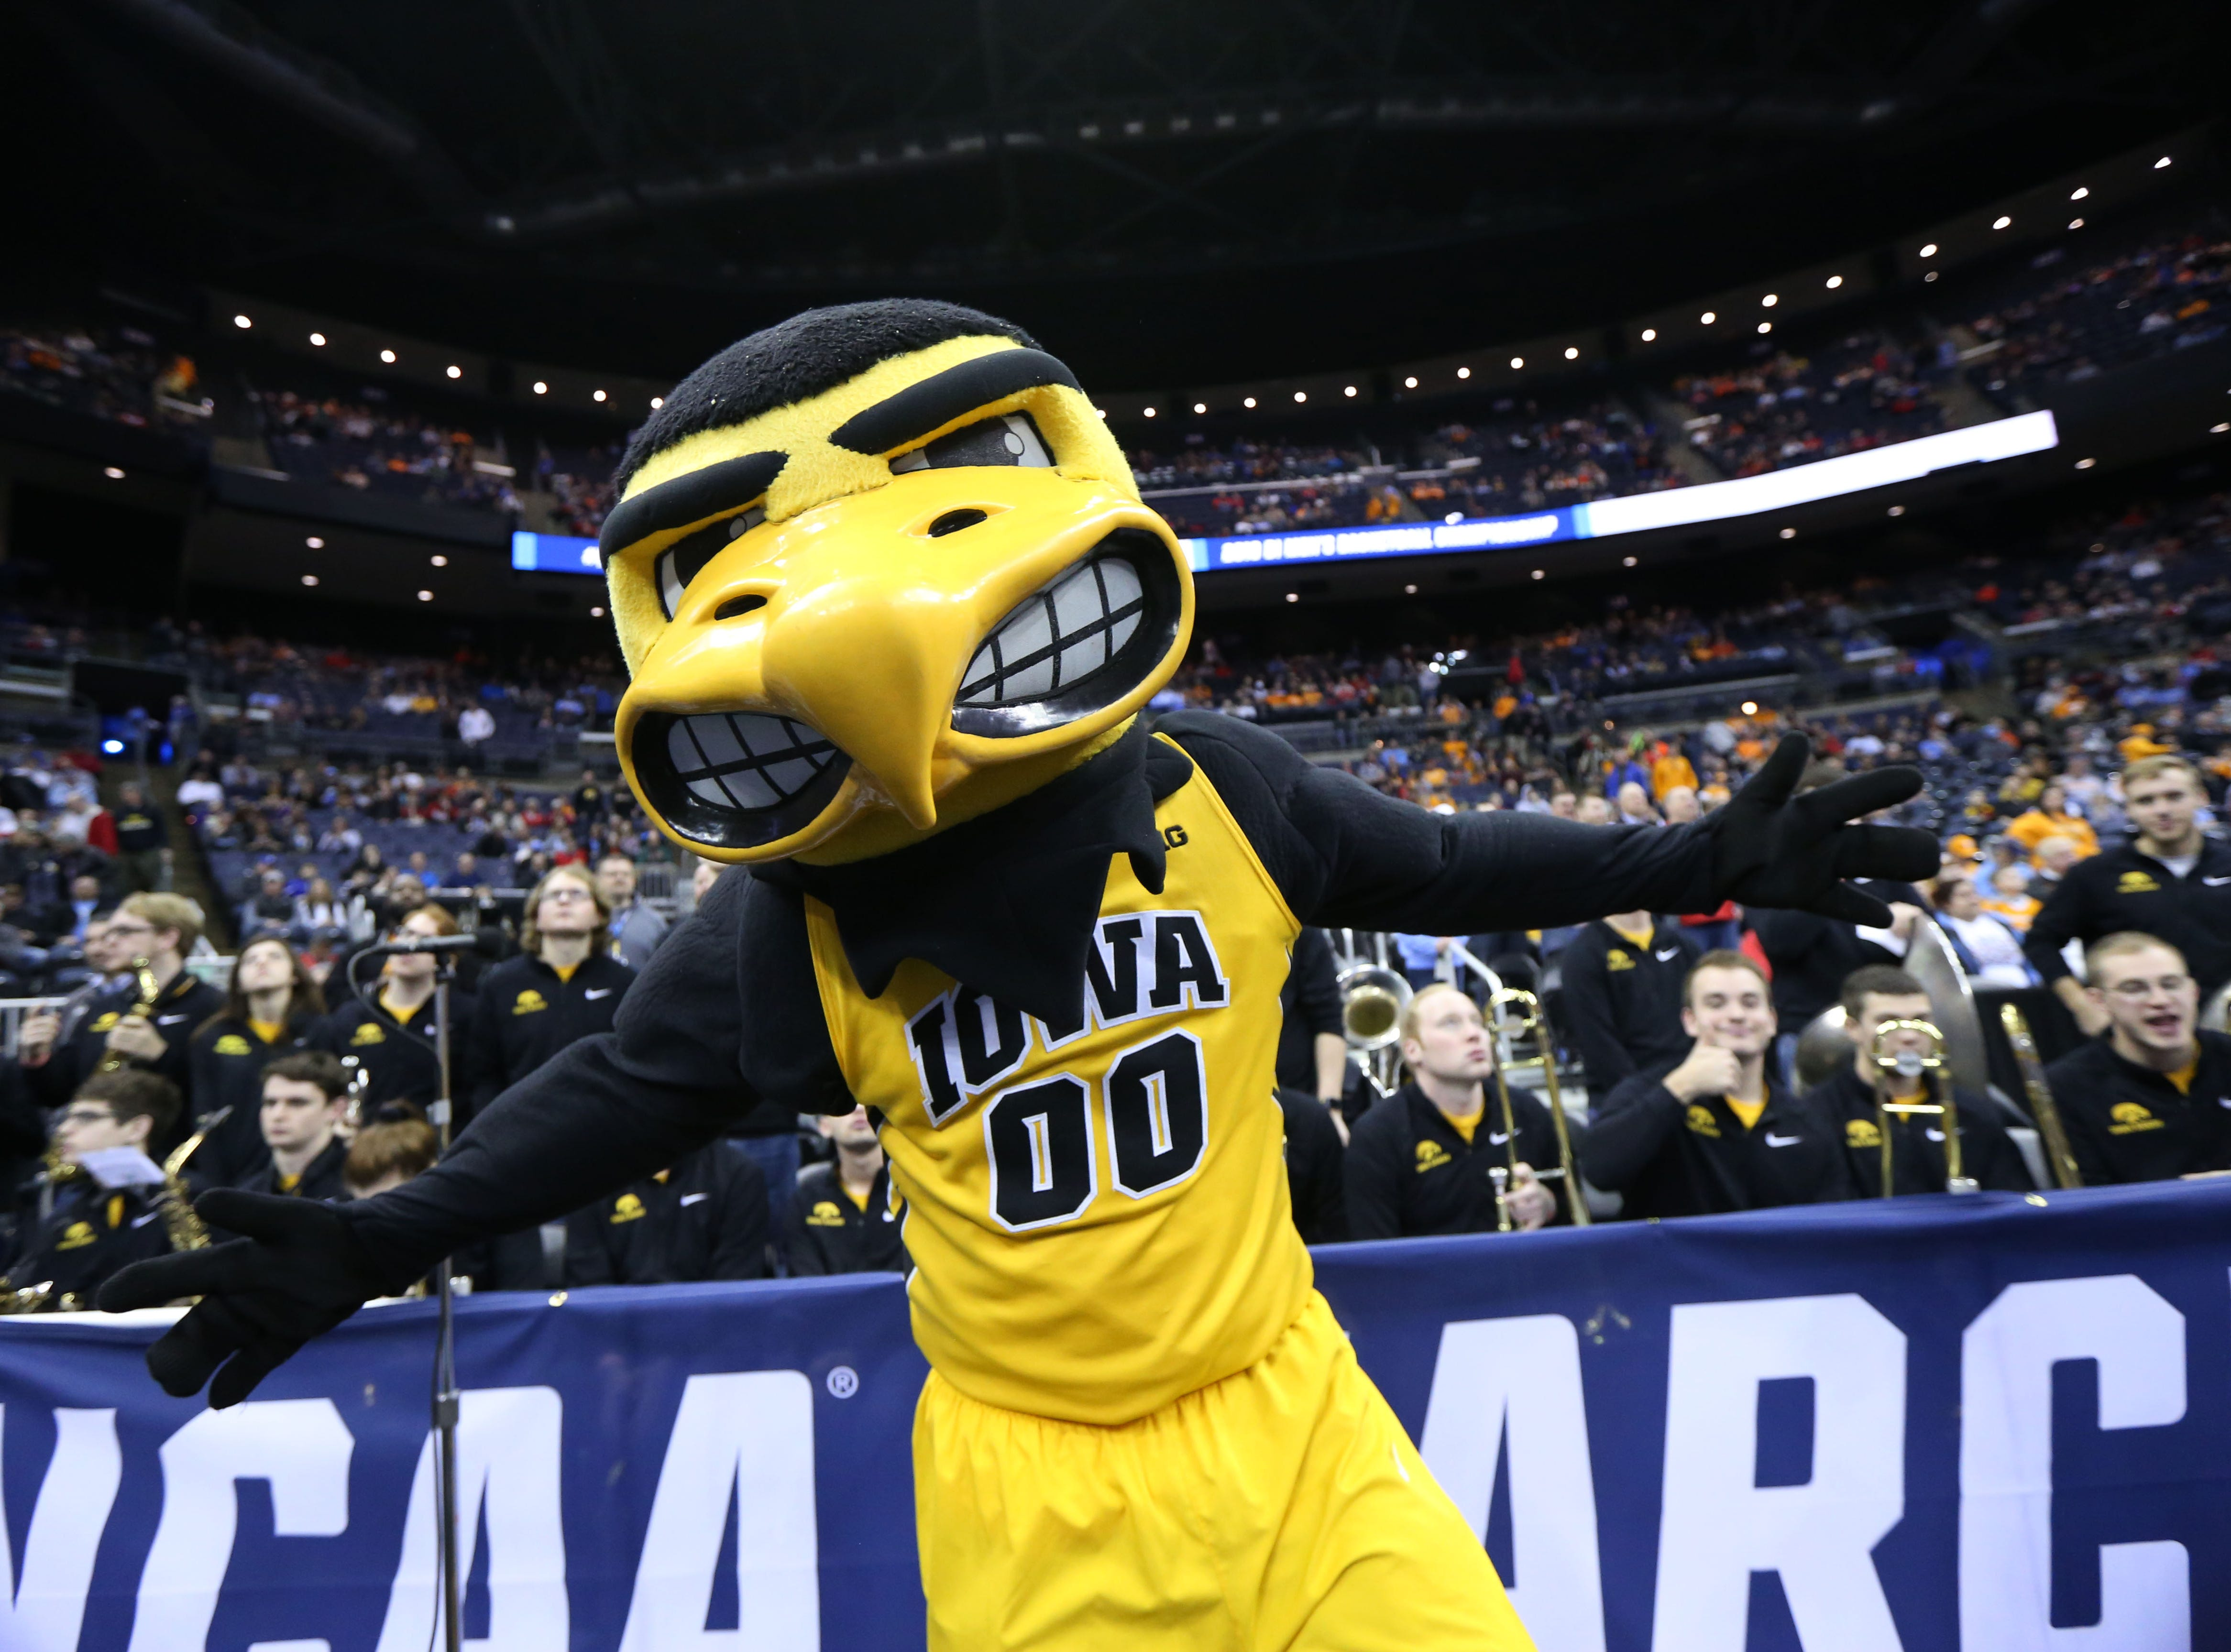 Iowa Hawkeyes mascot Herky the Hawk before the game against the Tennessee Volunteers in the second round of the 2019 NCAA Tournament at Nationwide Arena.